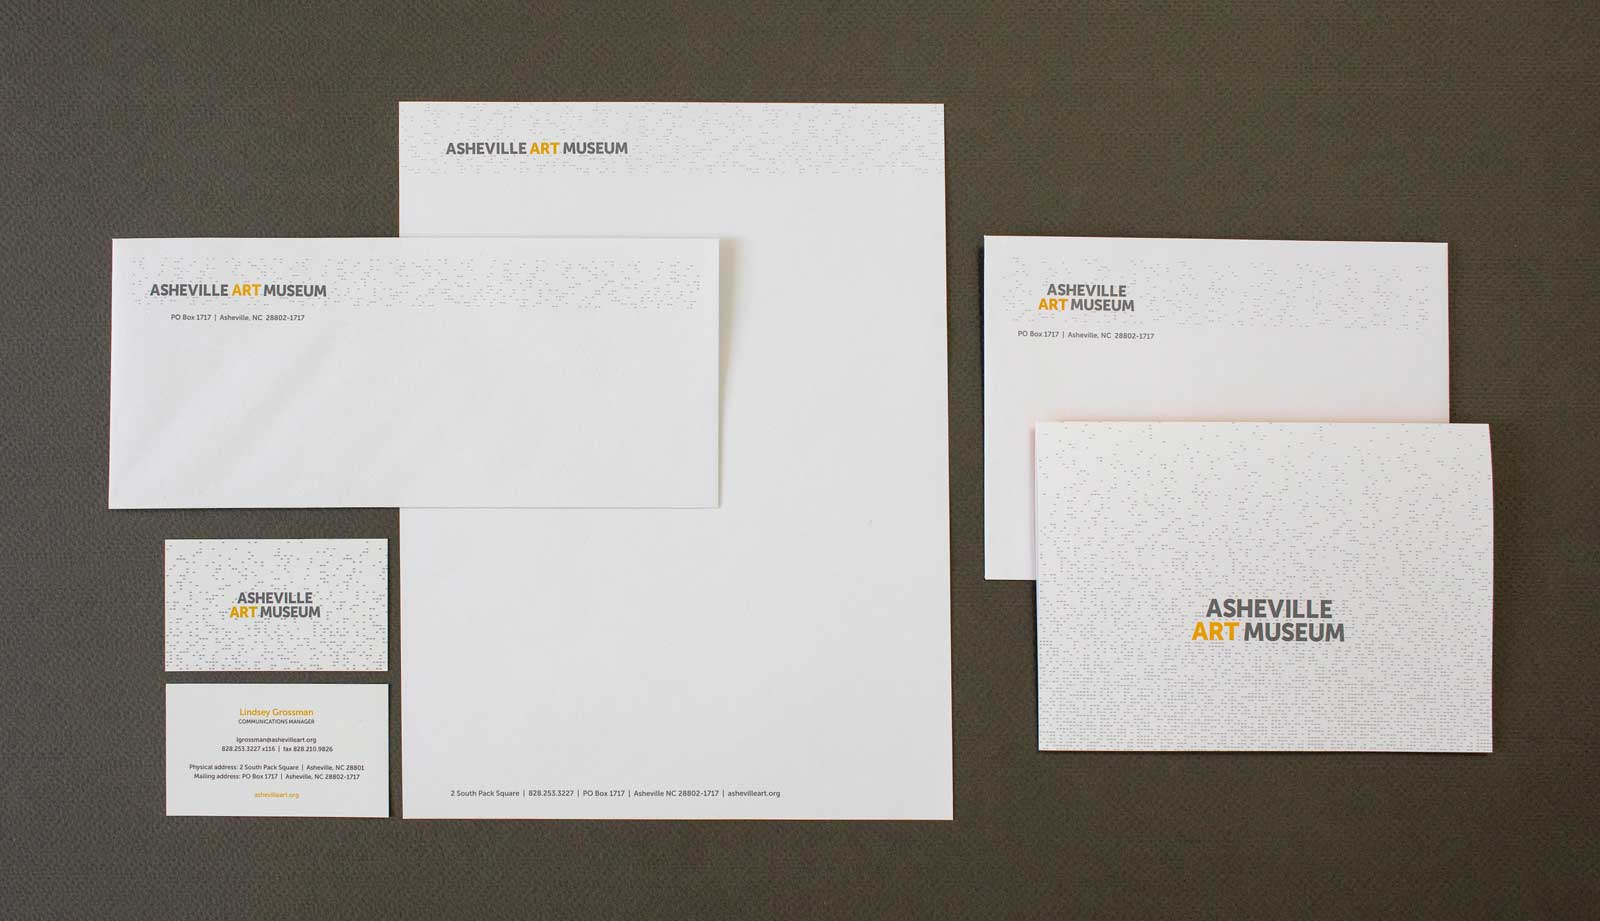 Asheville Art Museum stationery set that includes letterhead, business card, envelope, and notecard and notecard envelope. Design on white paper with logo and perforated pattern.